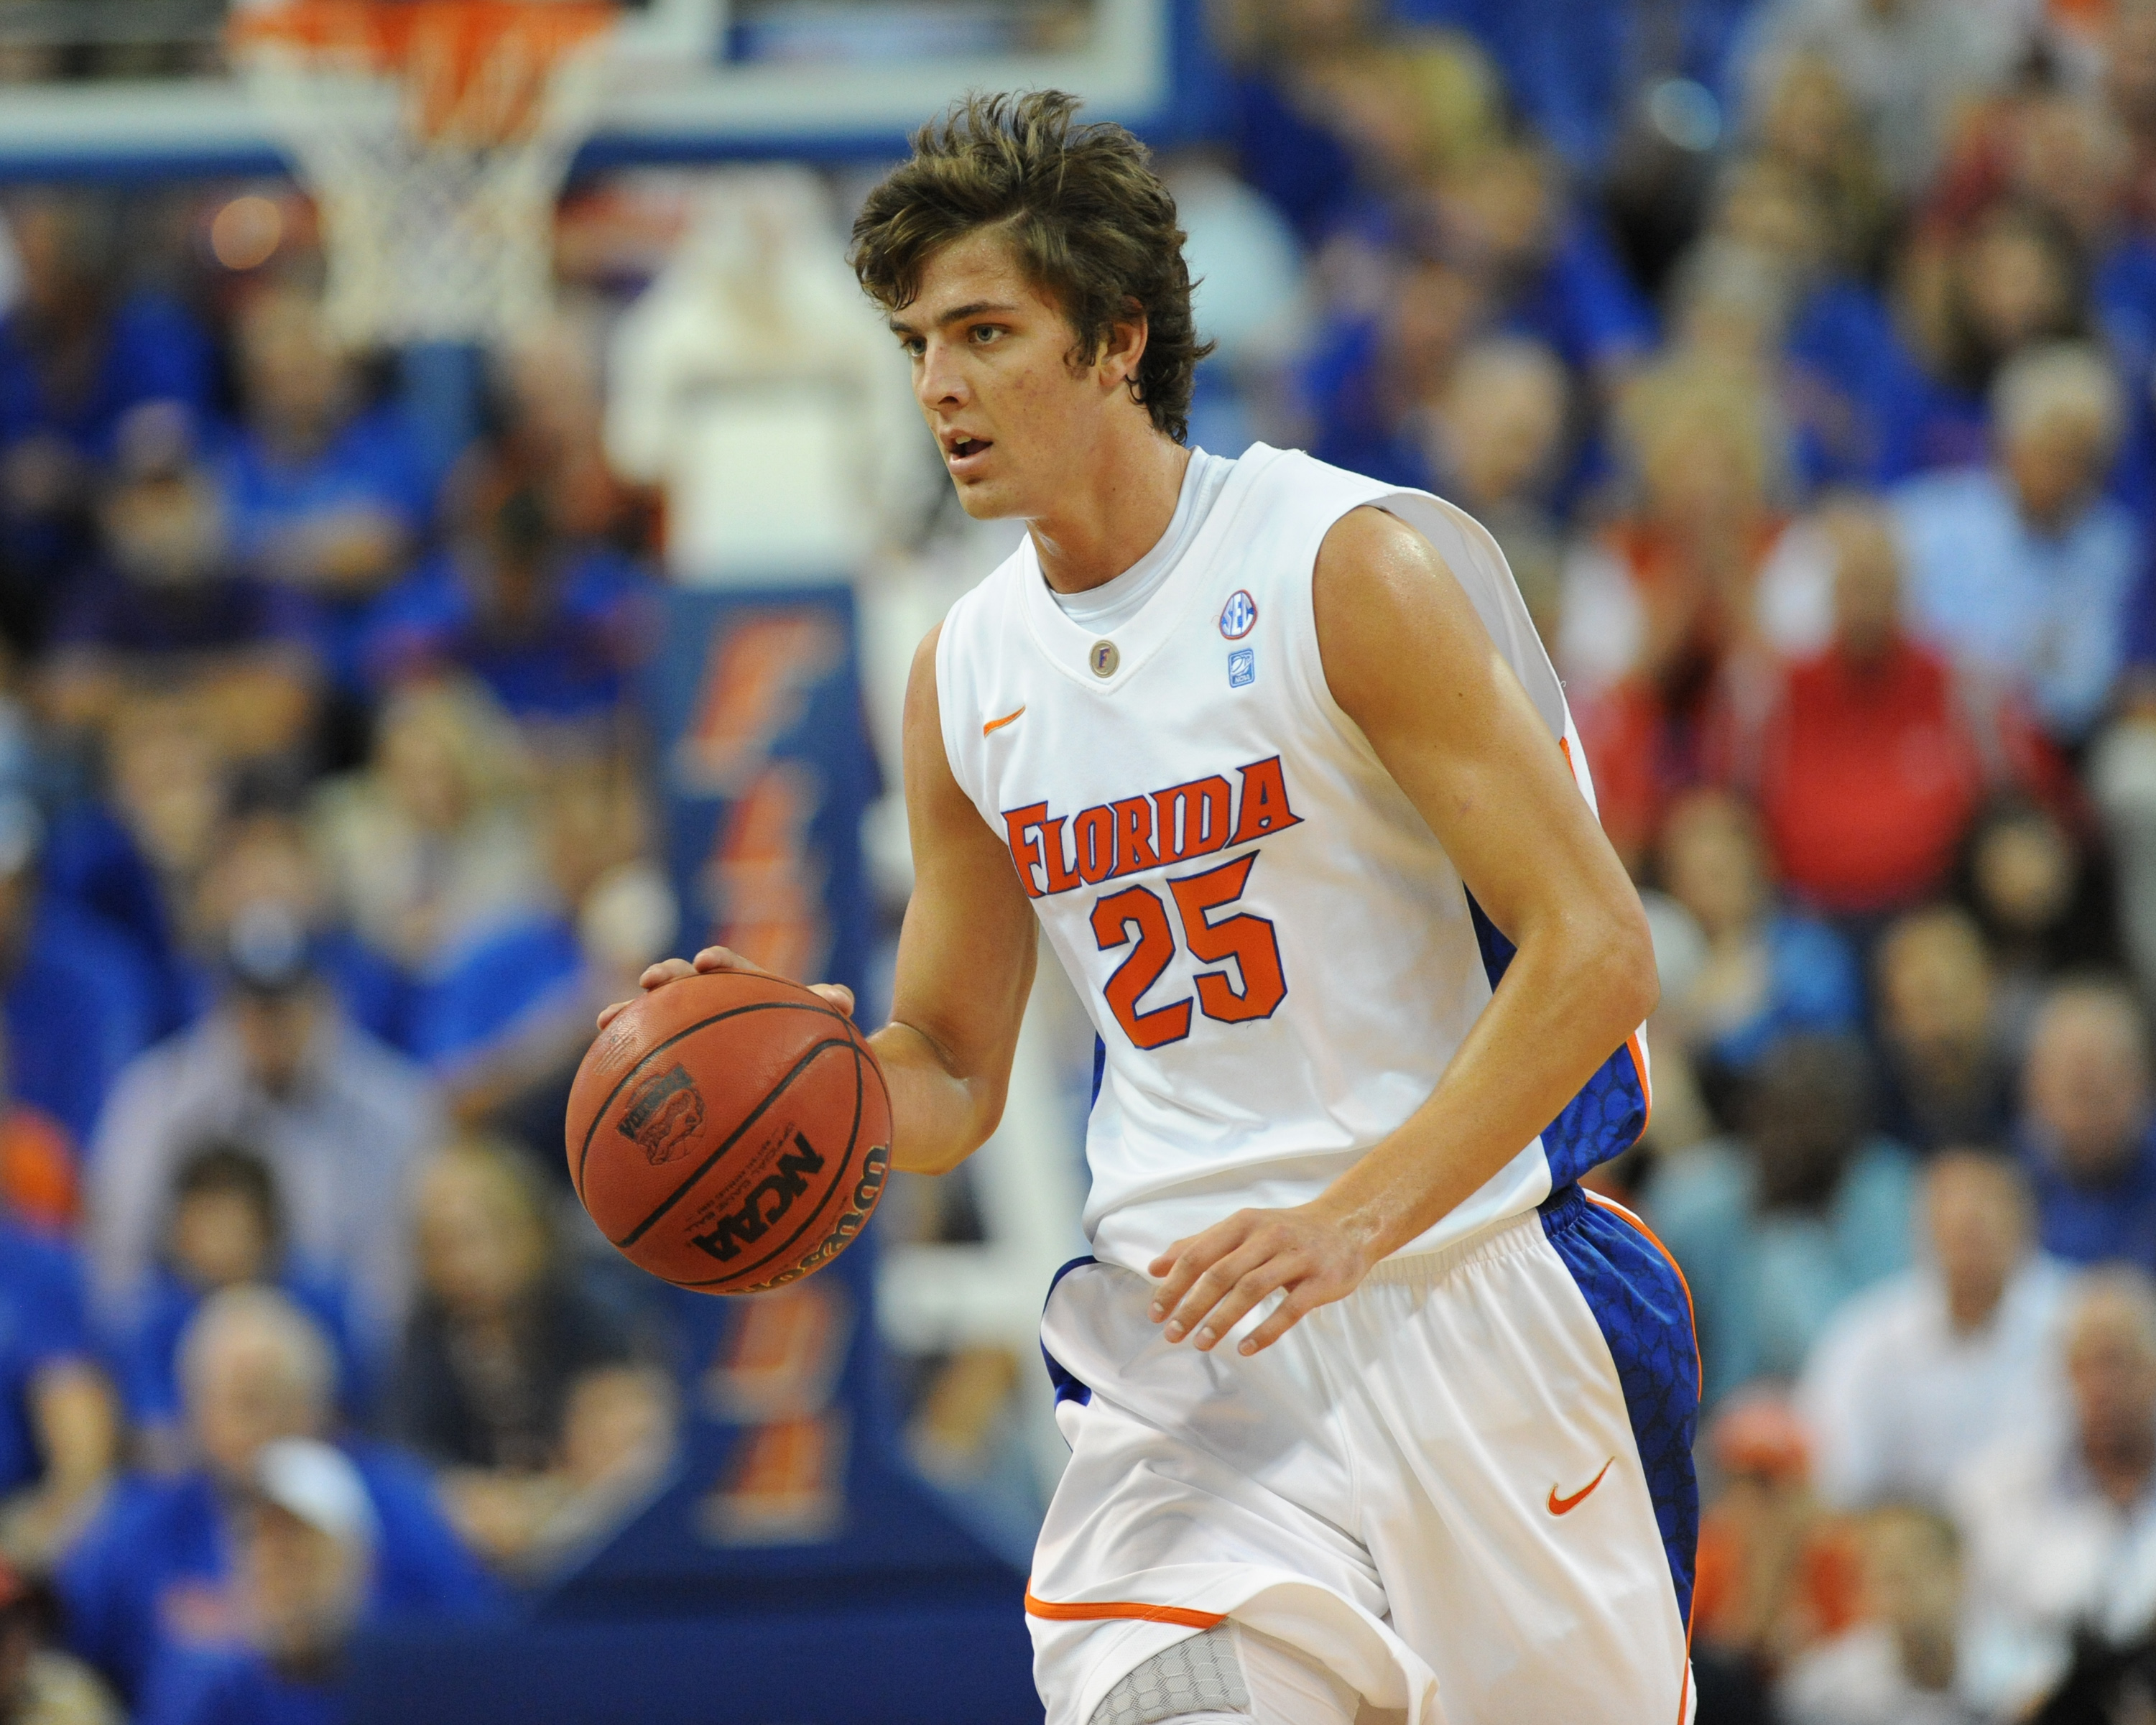 GAINESVILLE, FL - NOVEMBER 16: Forward Chandler Parsons #25  of the Florida Gators drives against the Ohio State Buckeyes November 16, 2010 at the Stephen C. O'Connell Center in Gainesville, Florida.  (Photo by Al Messerschmidt/Getty Images)